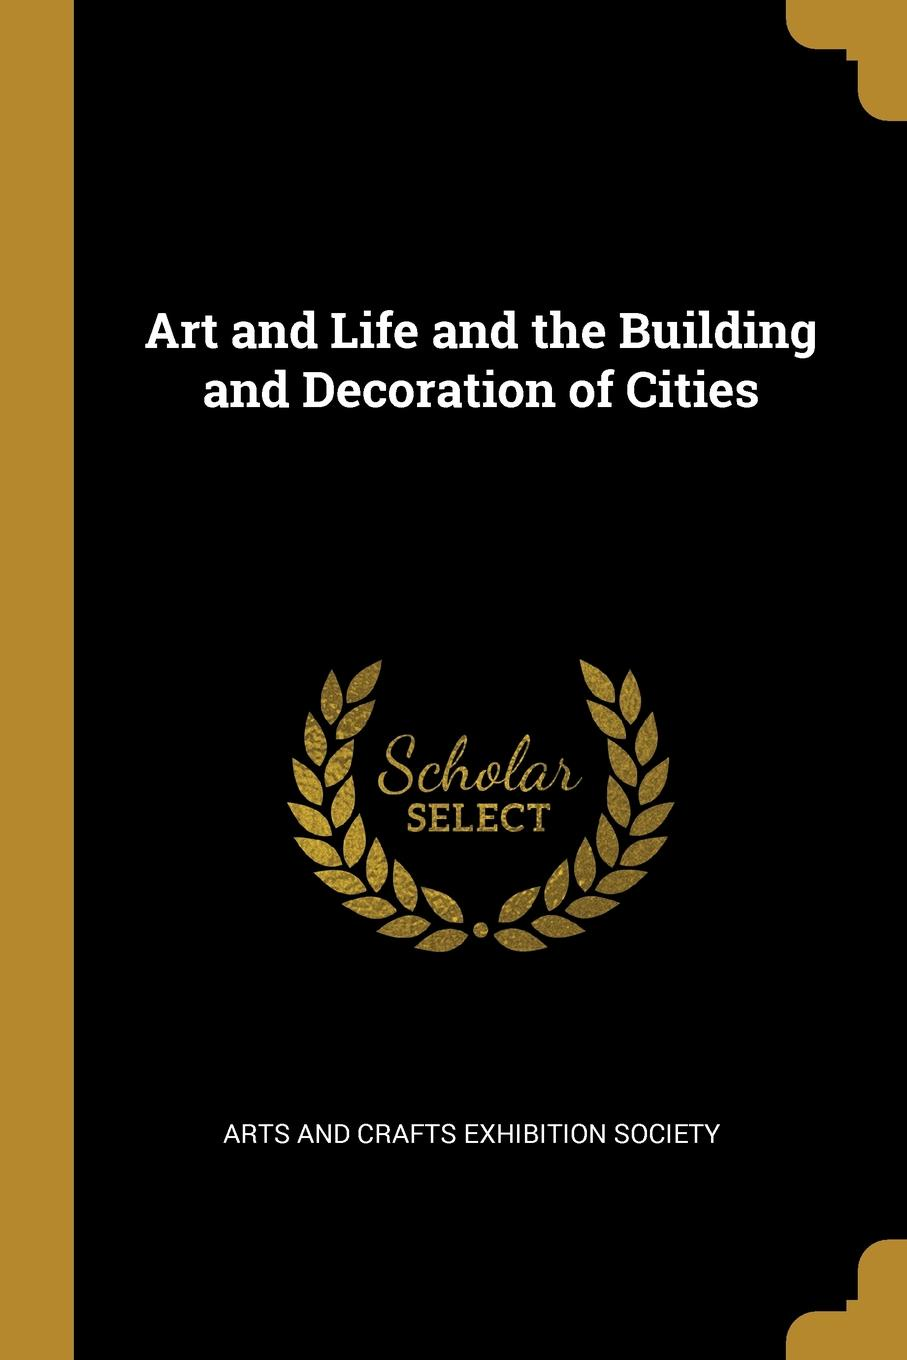 Arts and Crafts Exhibition Society. Art and Life and the Building and Decoration of Cities